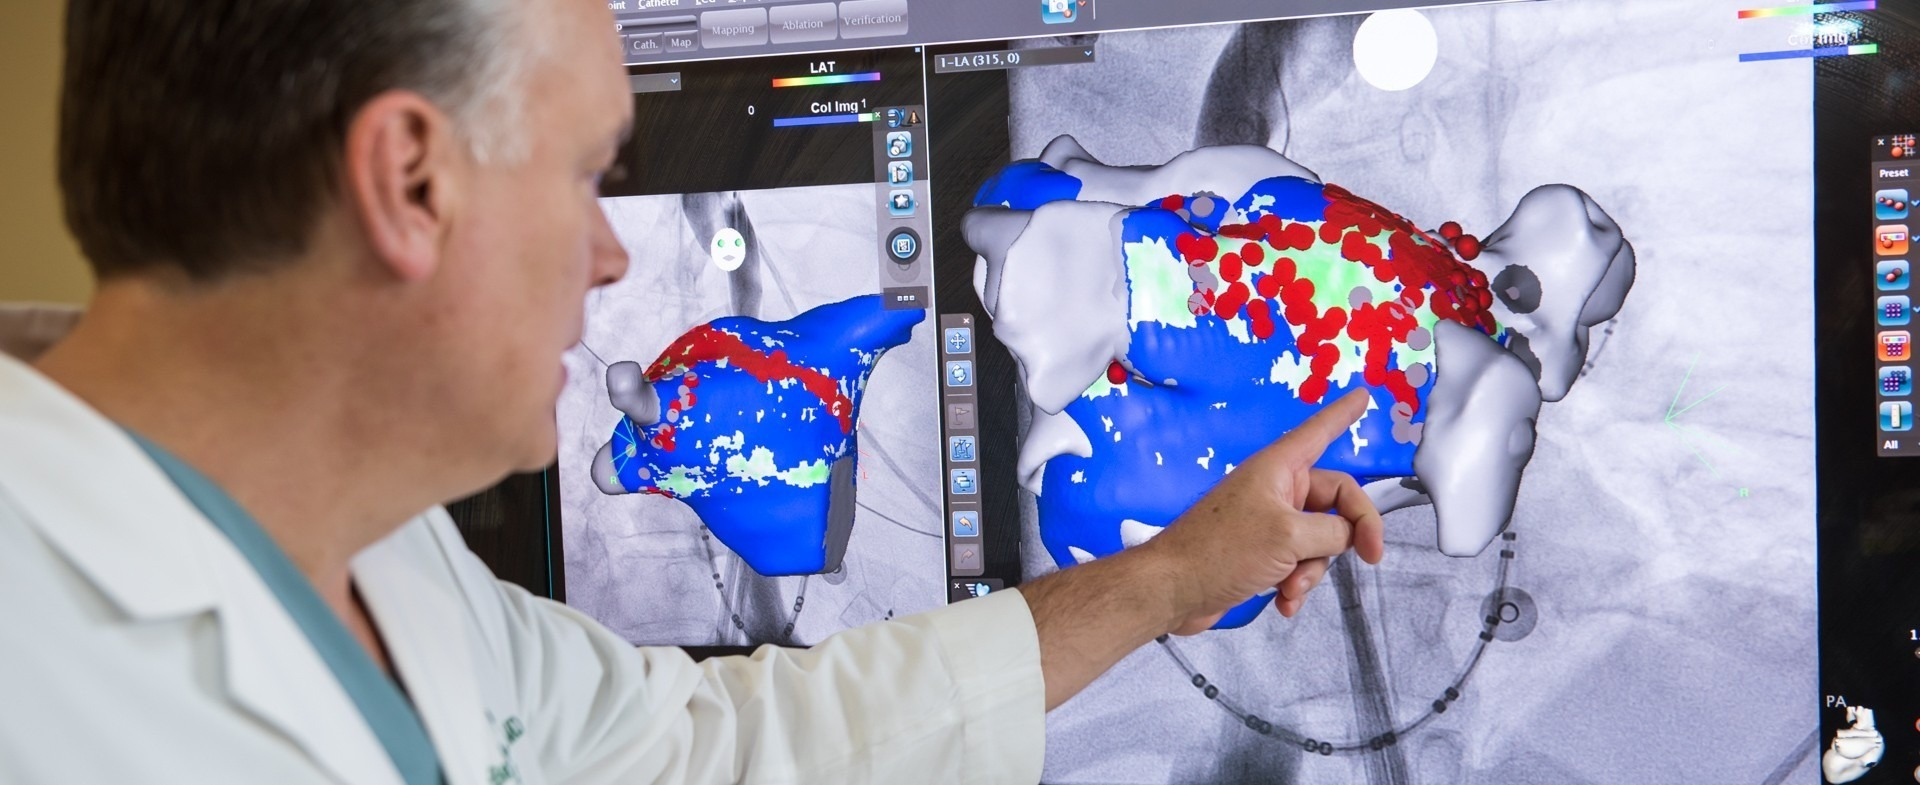 Doctor pointing at a digital image of atrial fibrillation (AFib)